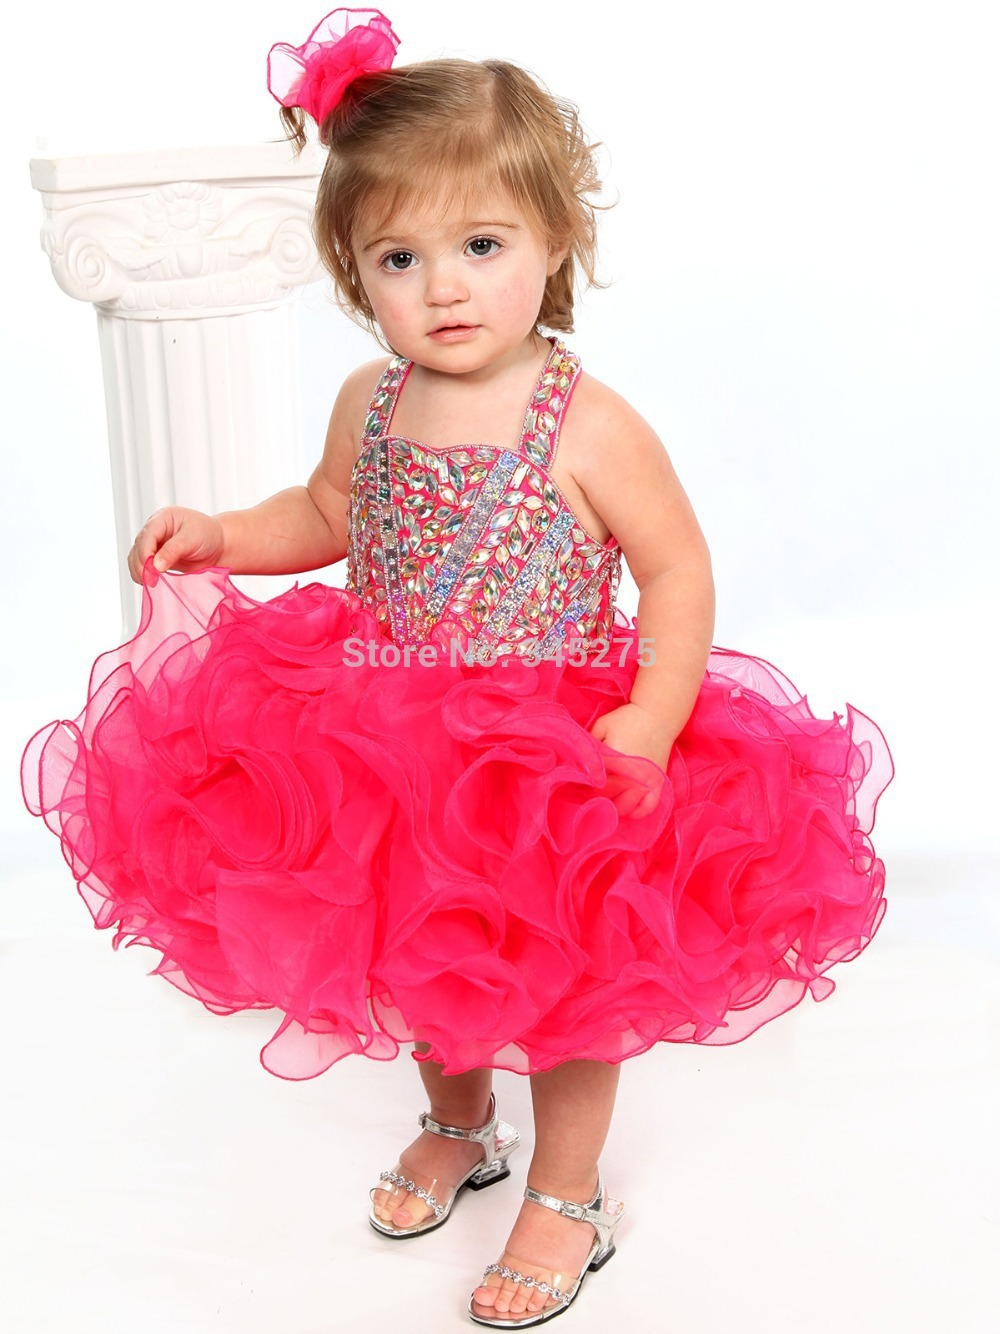 Toddler Holiday Dresses (2T-4T) Winter SALE Whether you're looking for traditionally hand-smocked fashions or adorable brother-sister outfits, we feature many exclusive styles that will have your Toddler looking picture perfect.